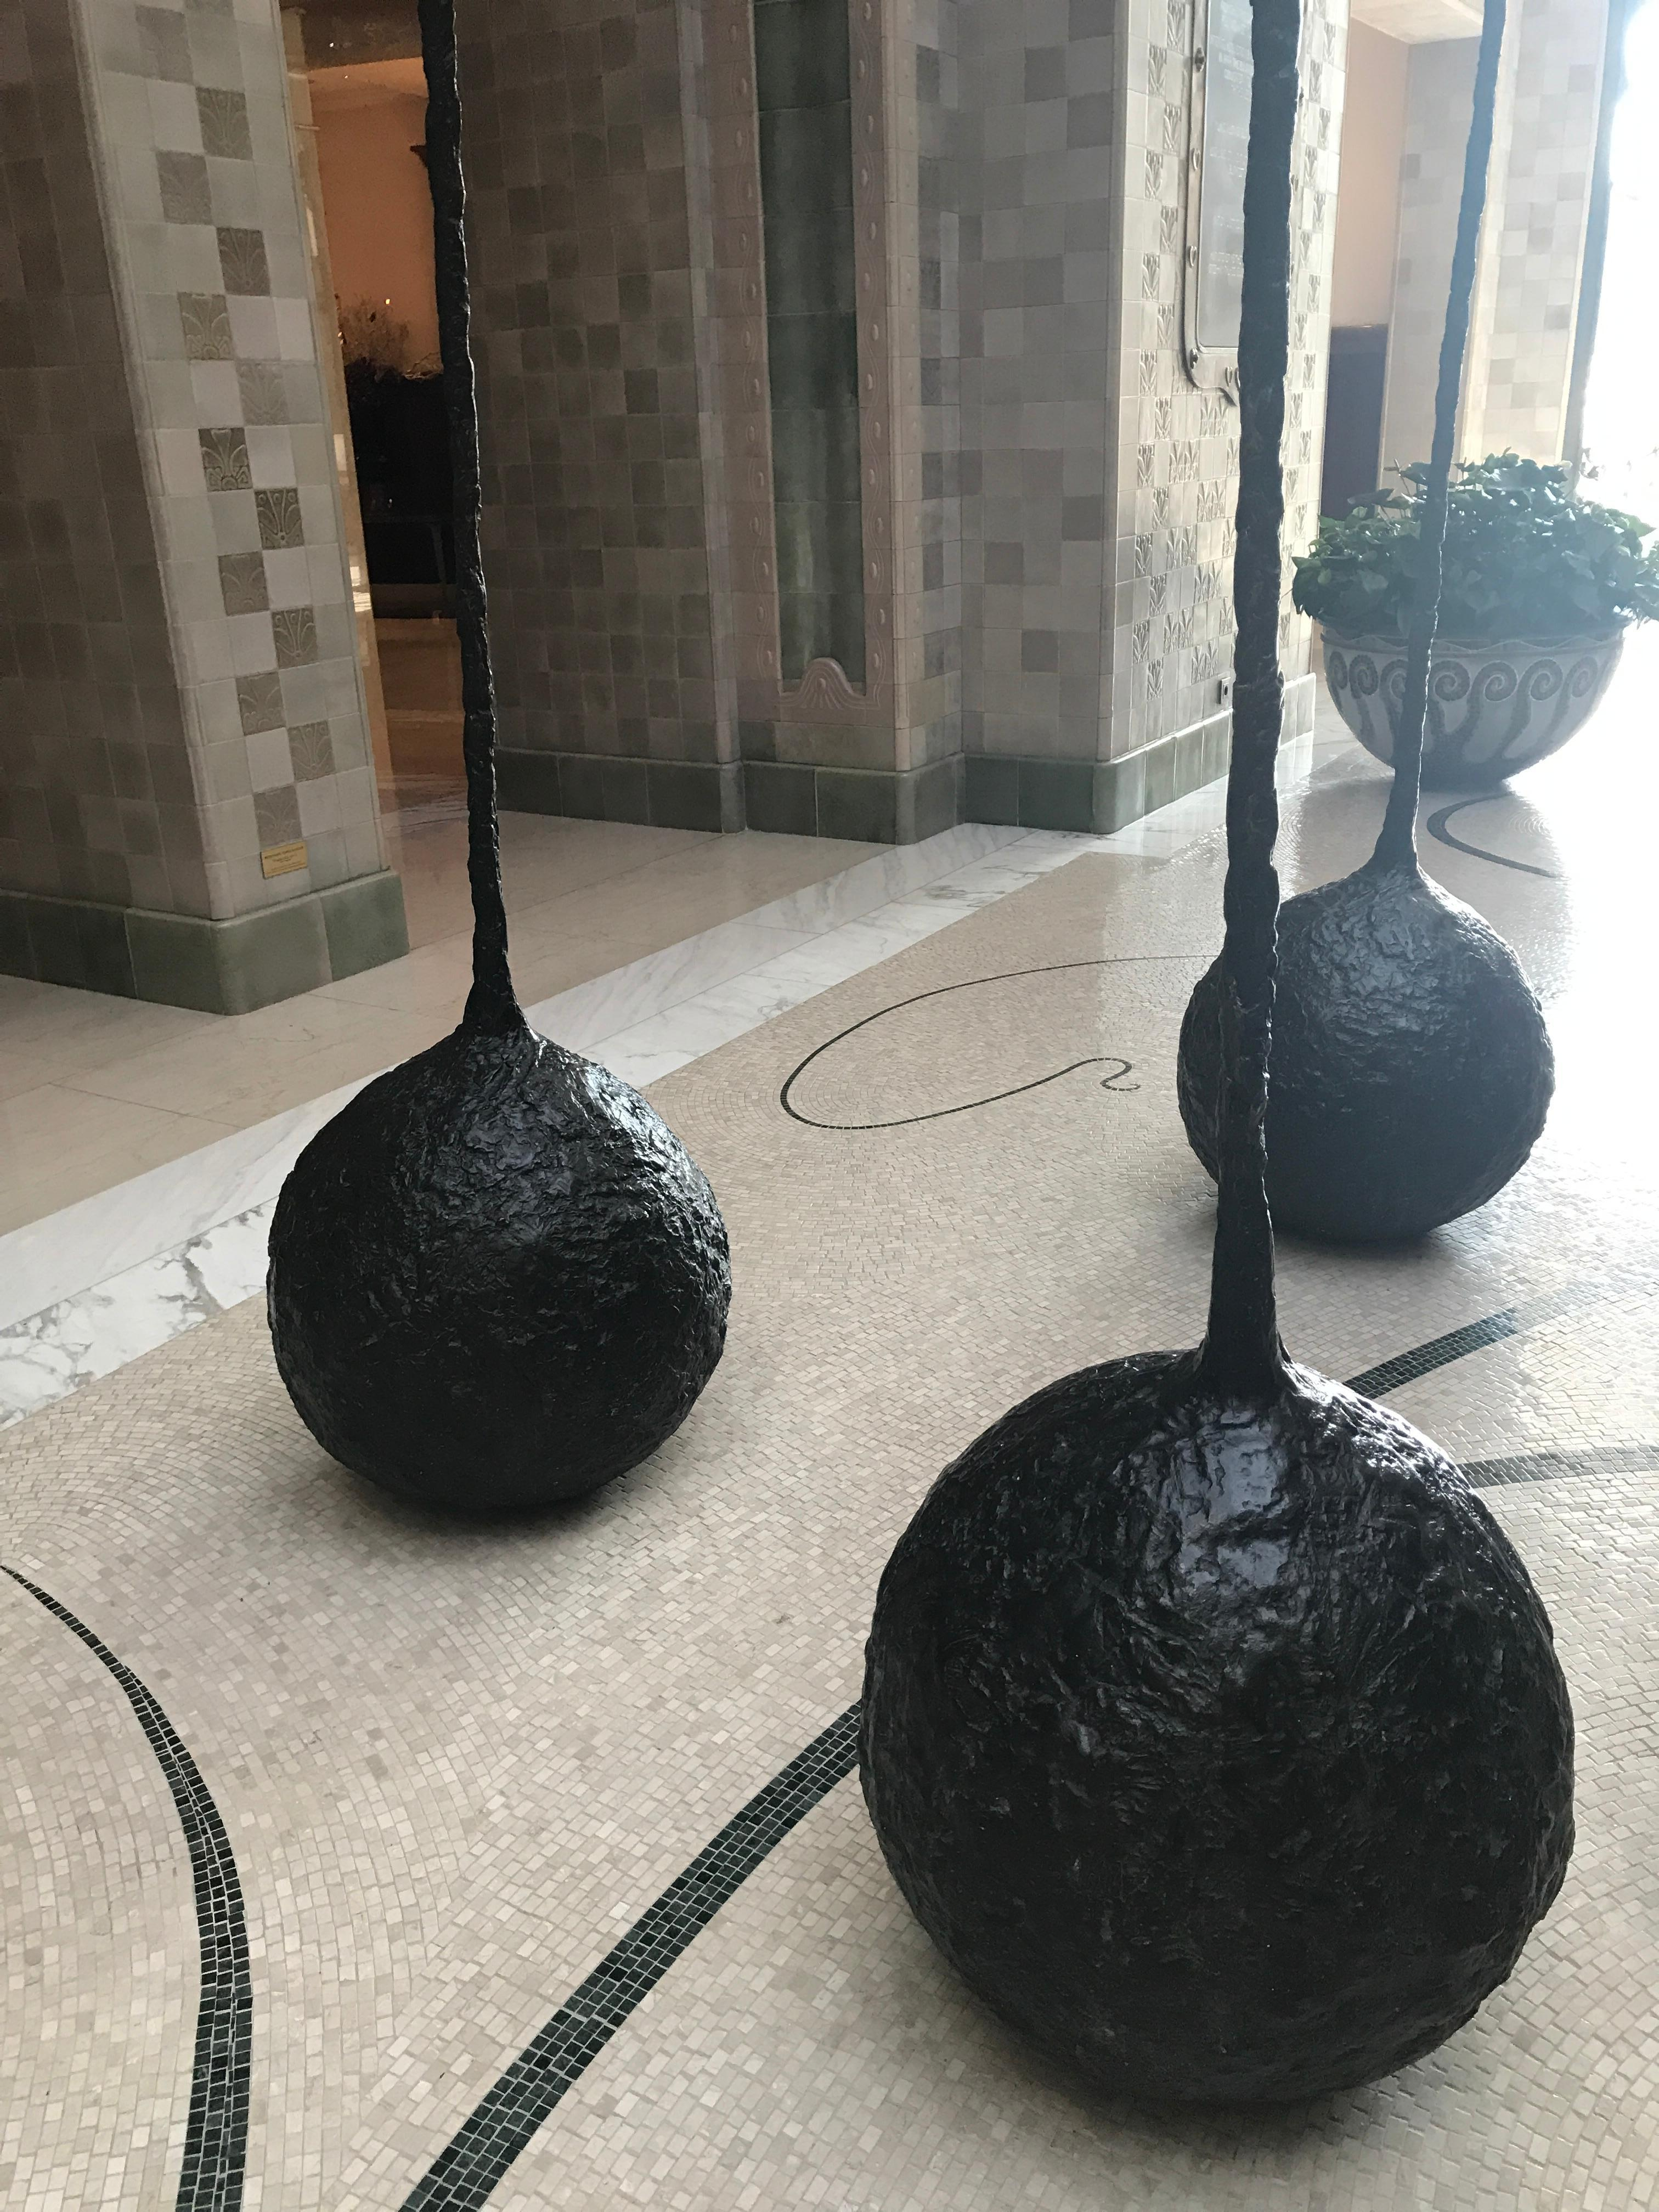 Cool sculptures in the lobby.